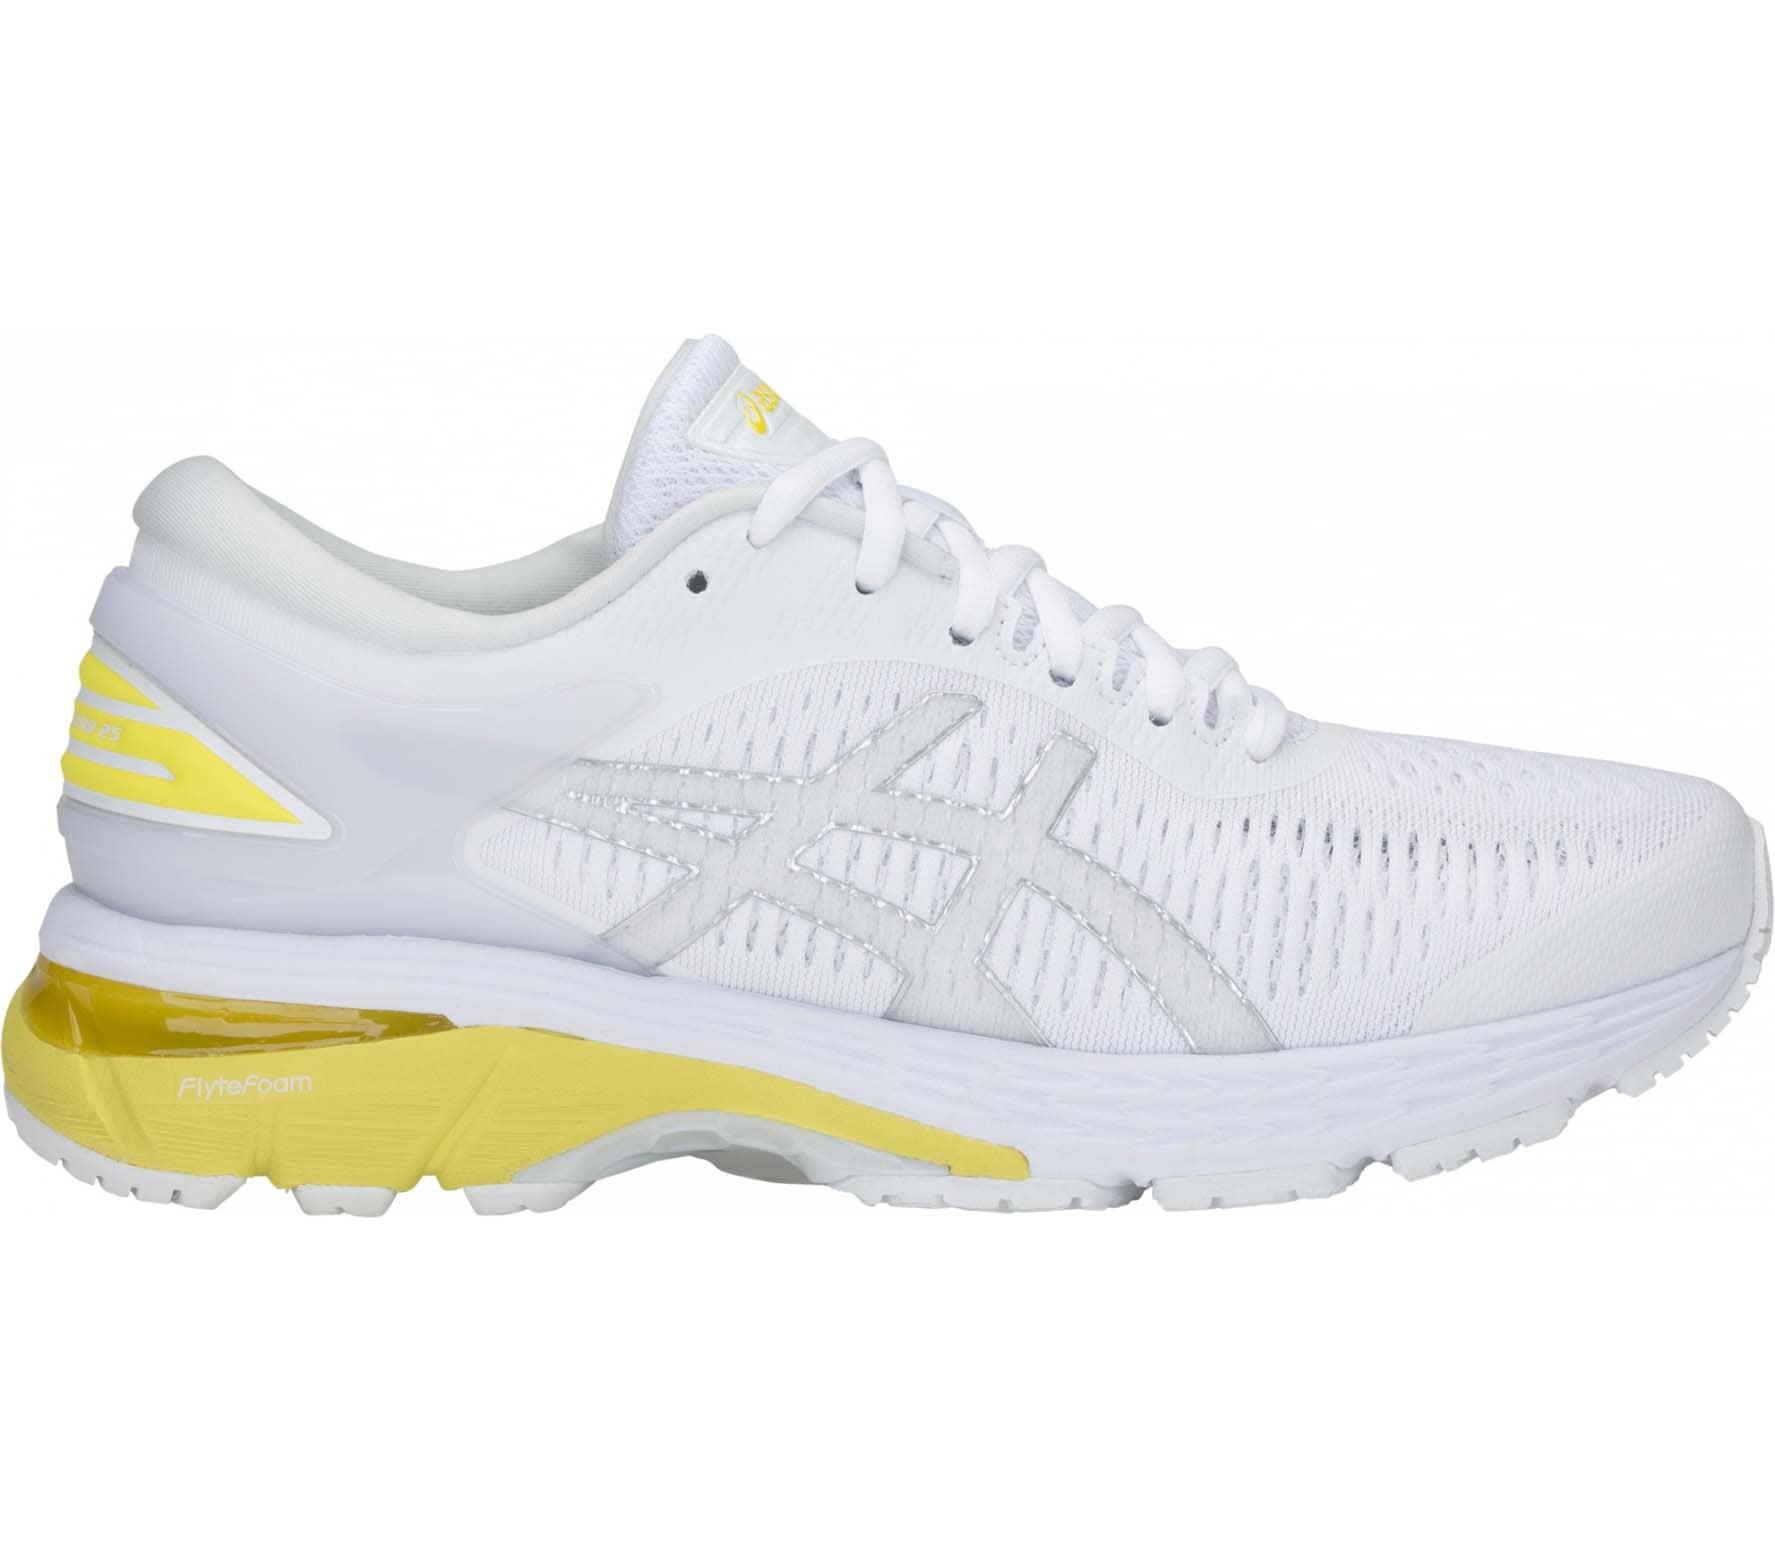 brand new 4d6fb 8e45d ASICS Gel-Kayano 25 Women white